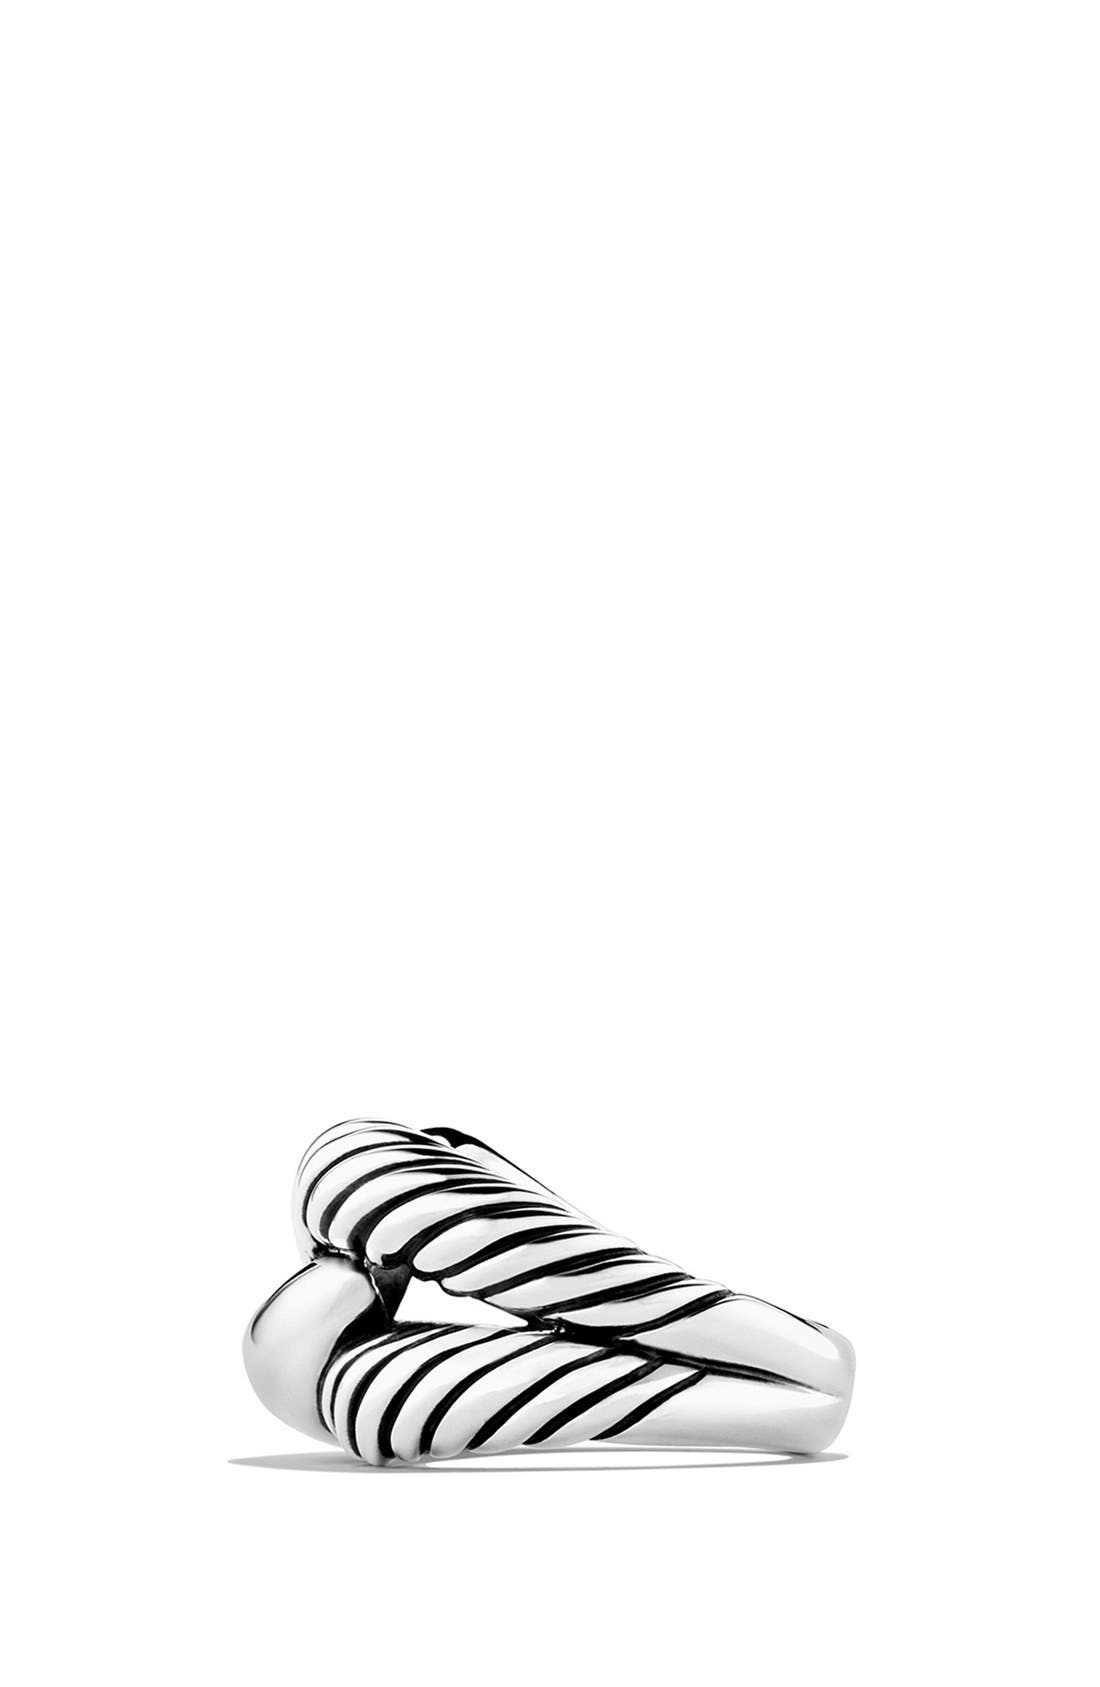 'Infinity' Large Ring,                             Alternate thumbnail 3, color,                             Silver